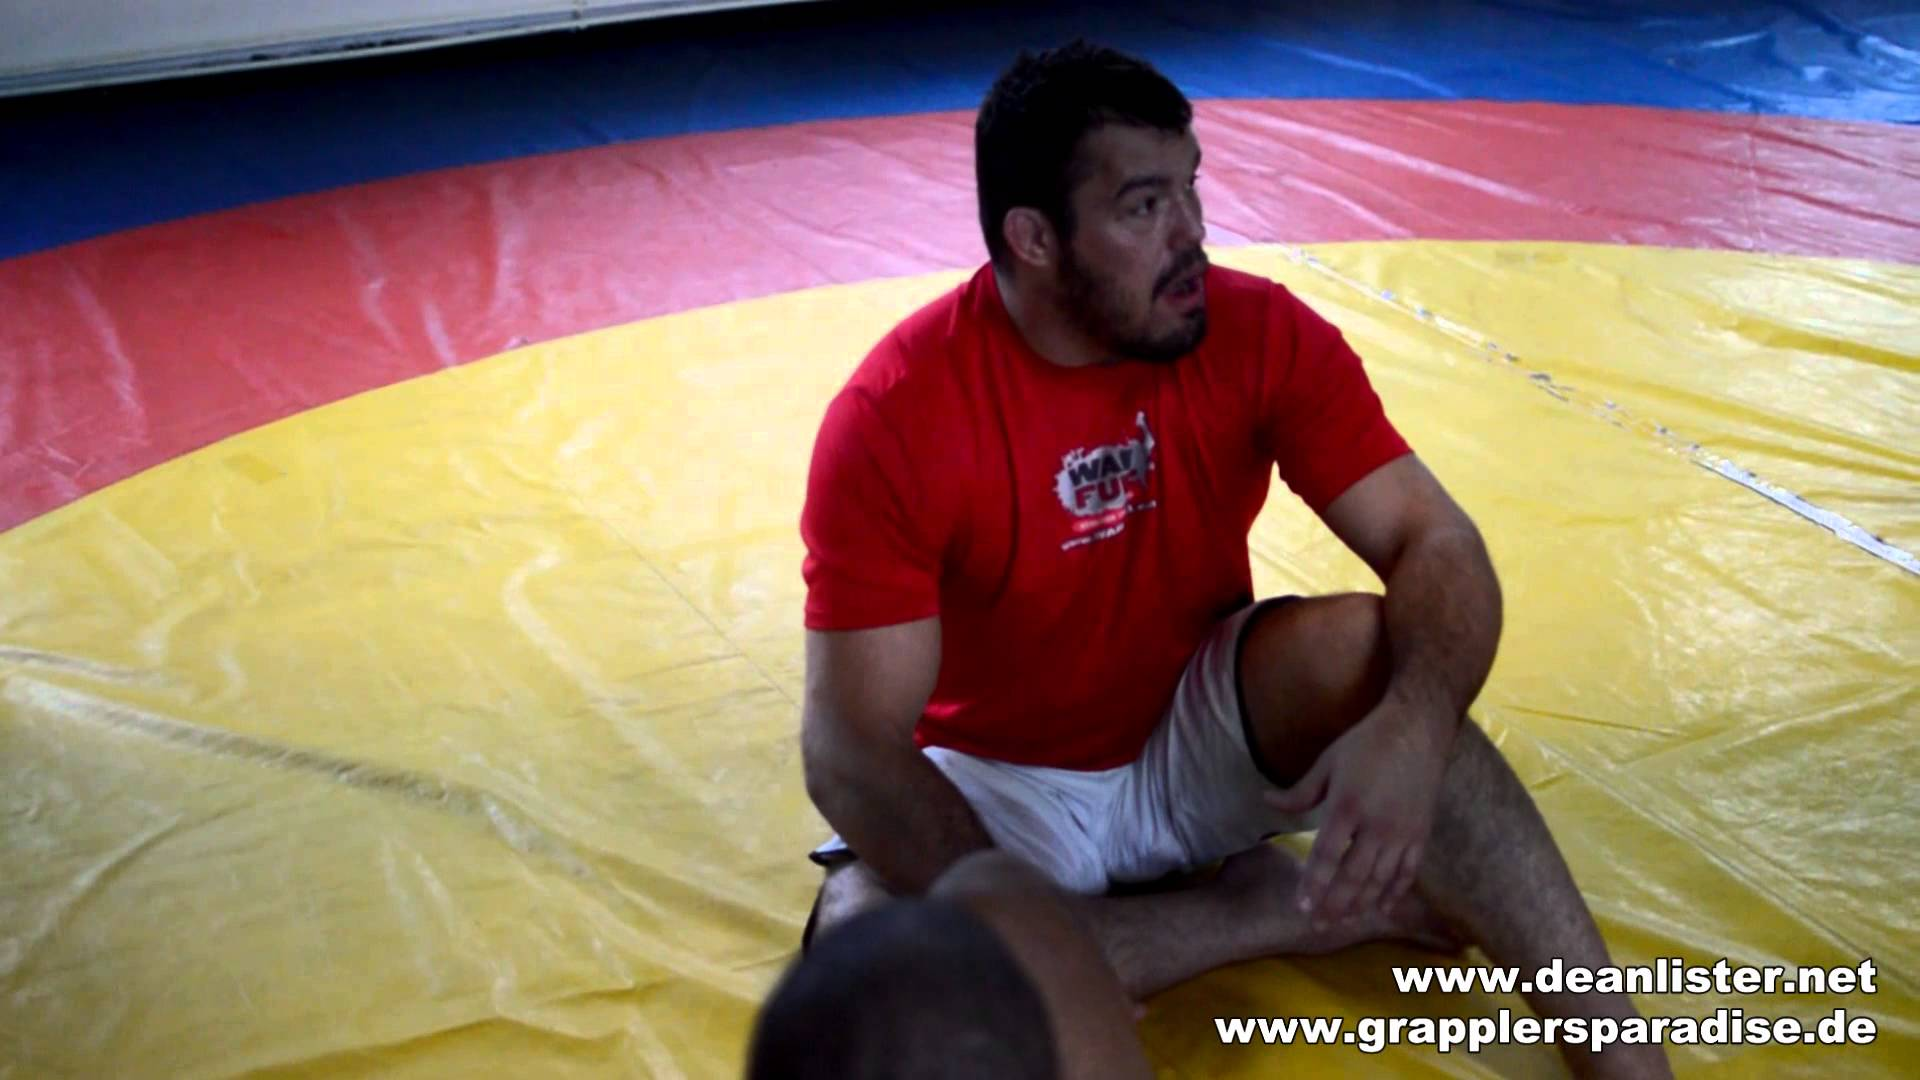 Dean Lister's straight ankle lock & counter